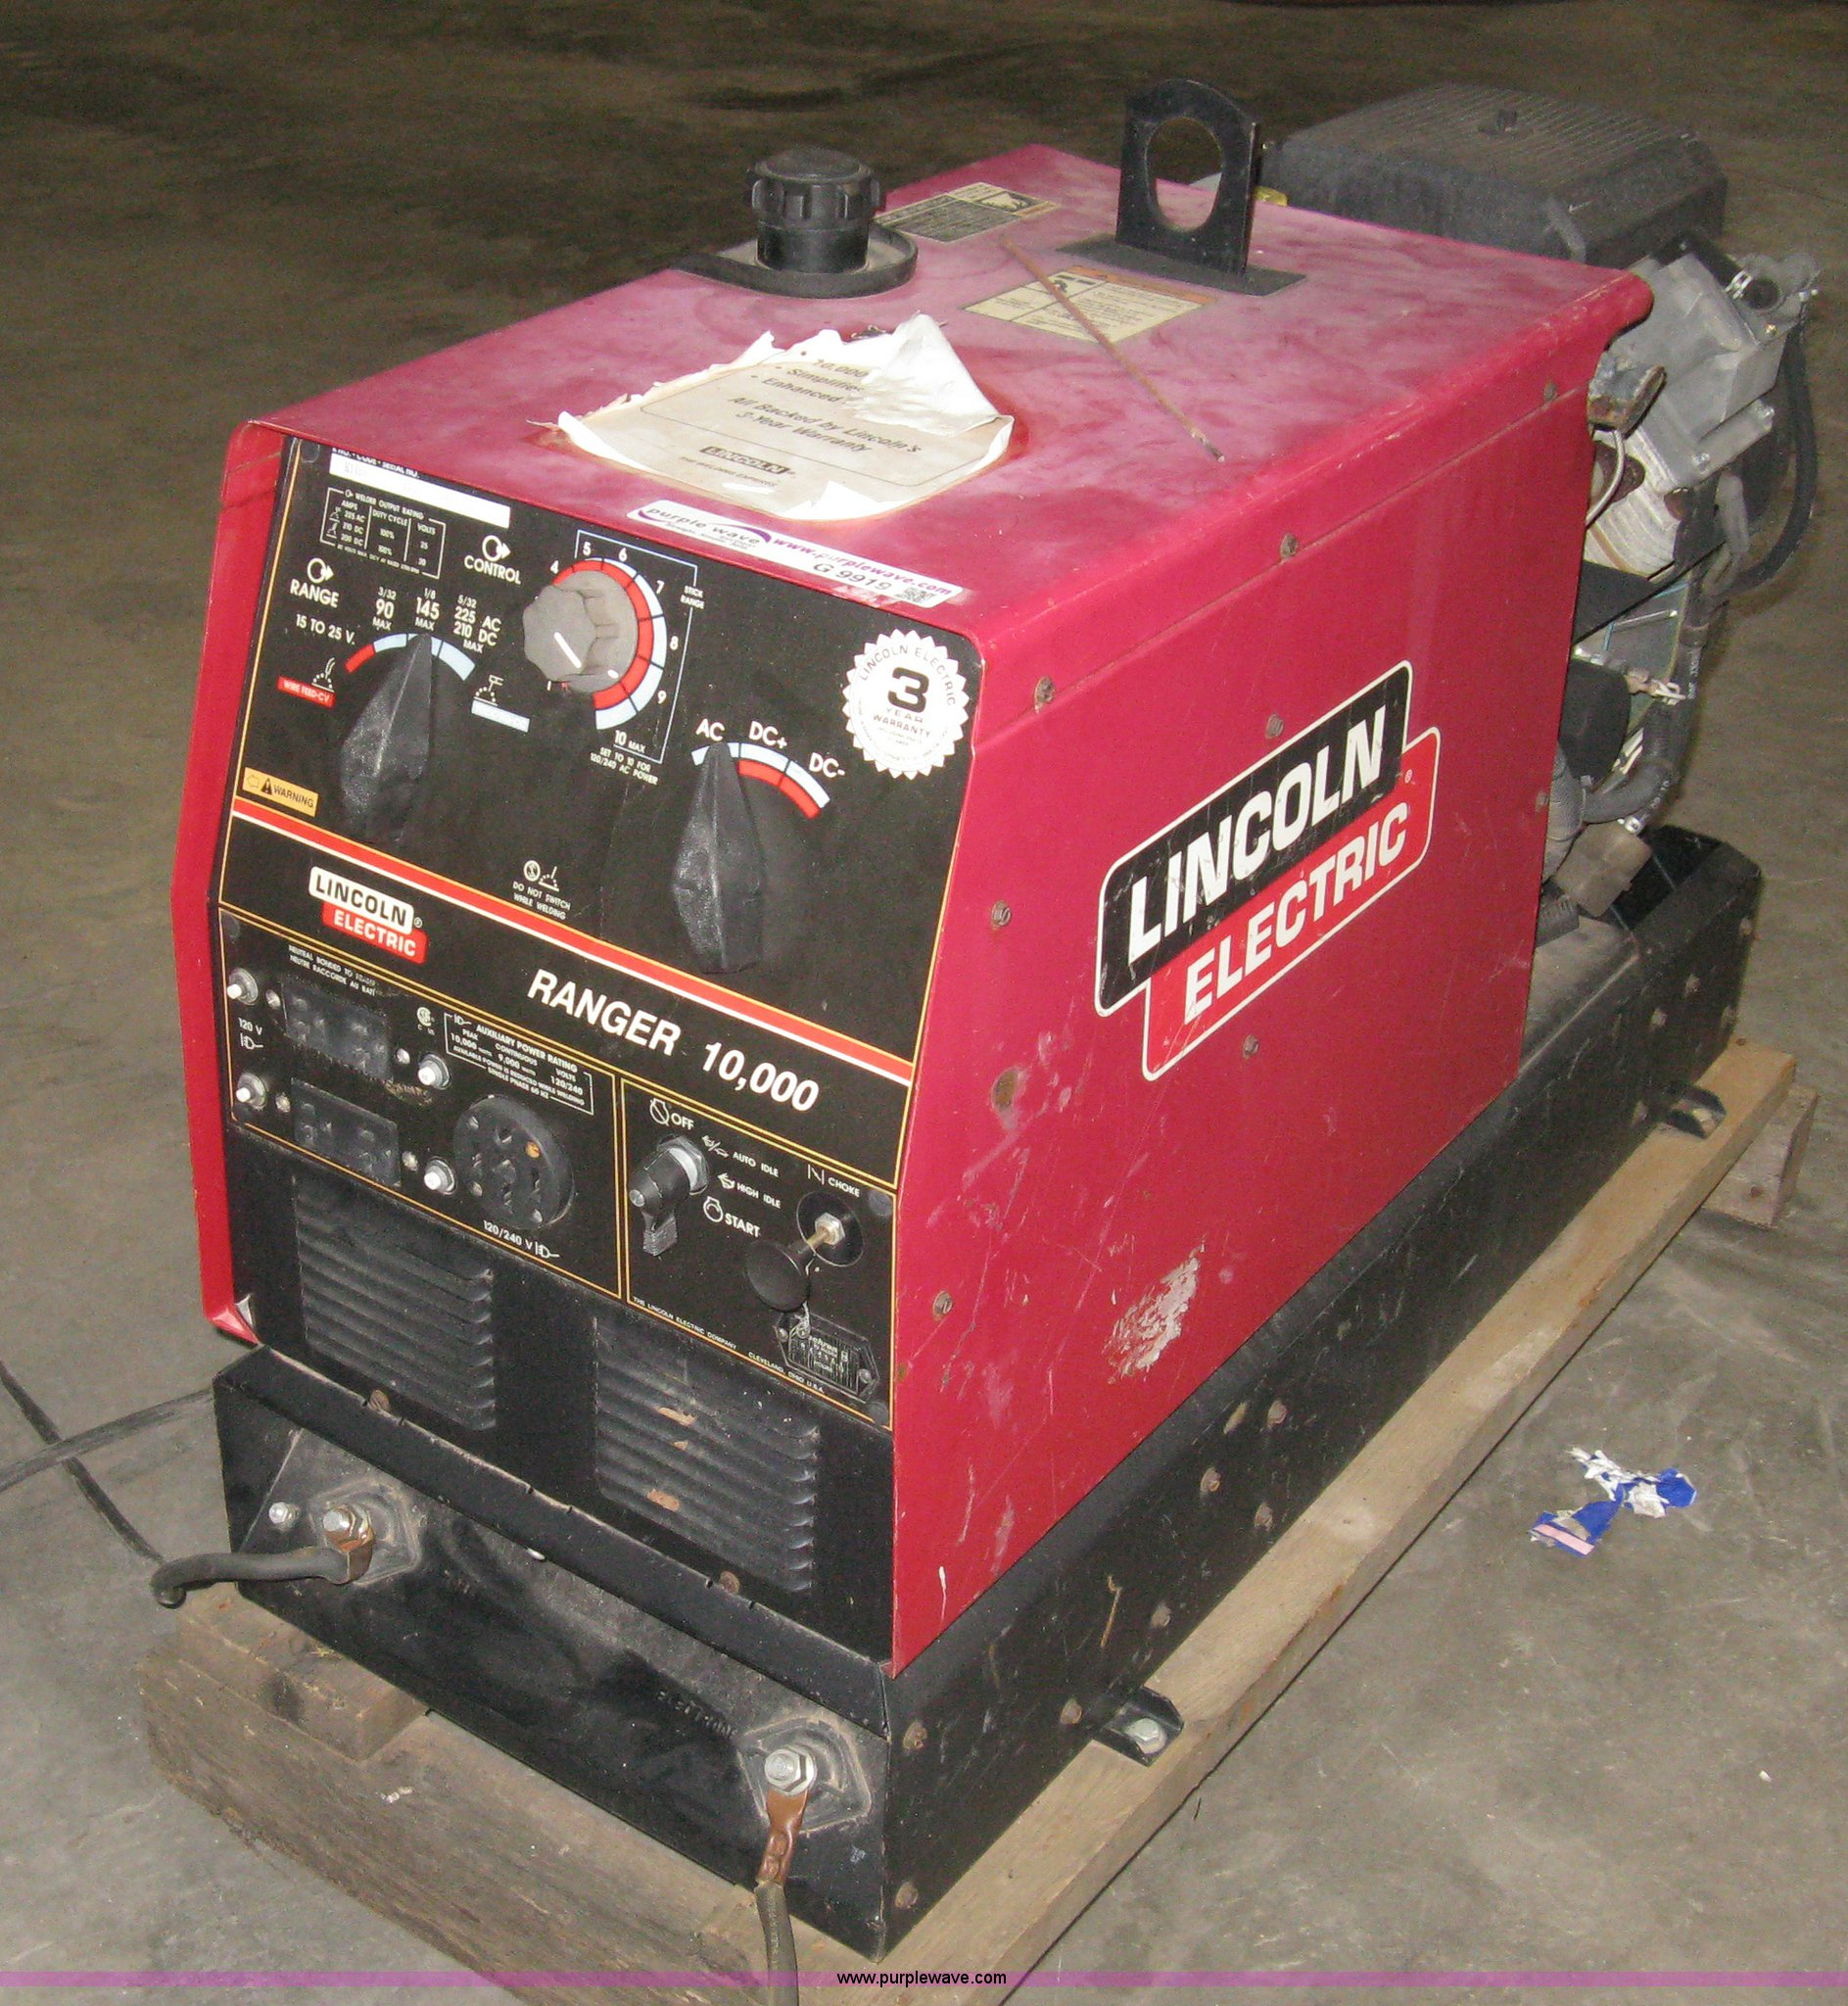 Lincoln Electric Ranger 10000 Welder Generator Item G9919 And Parts Image For